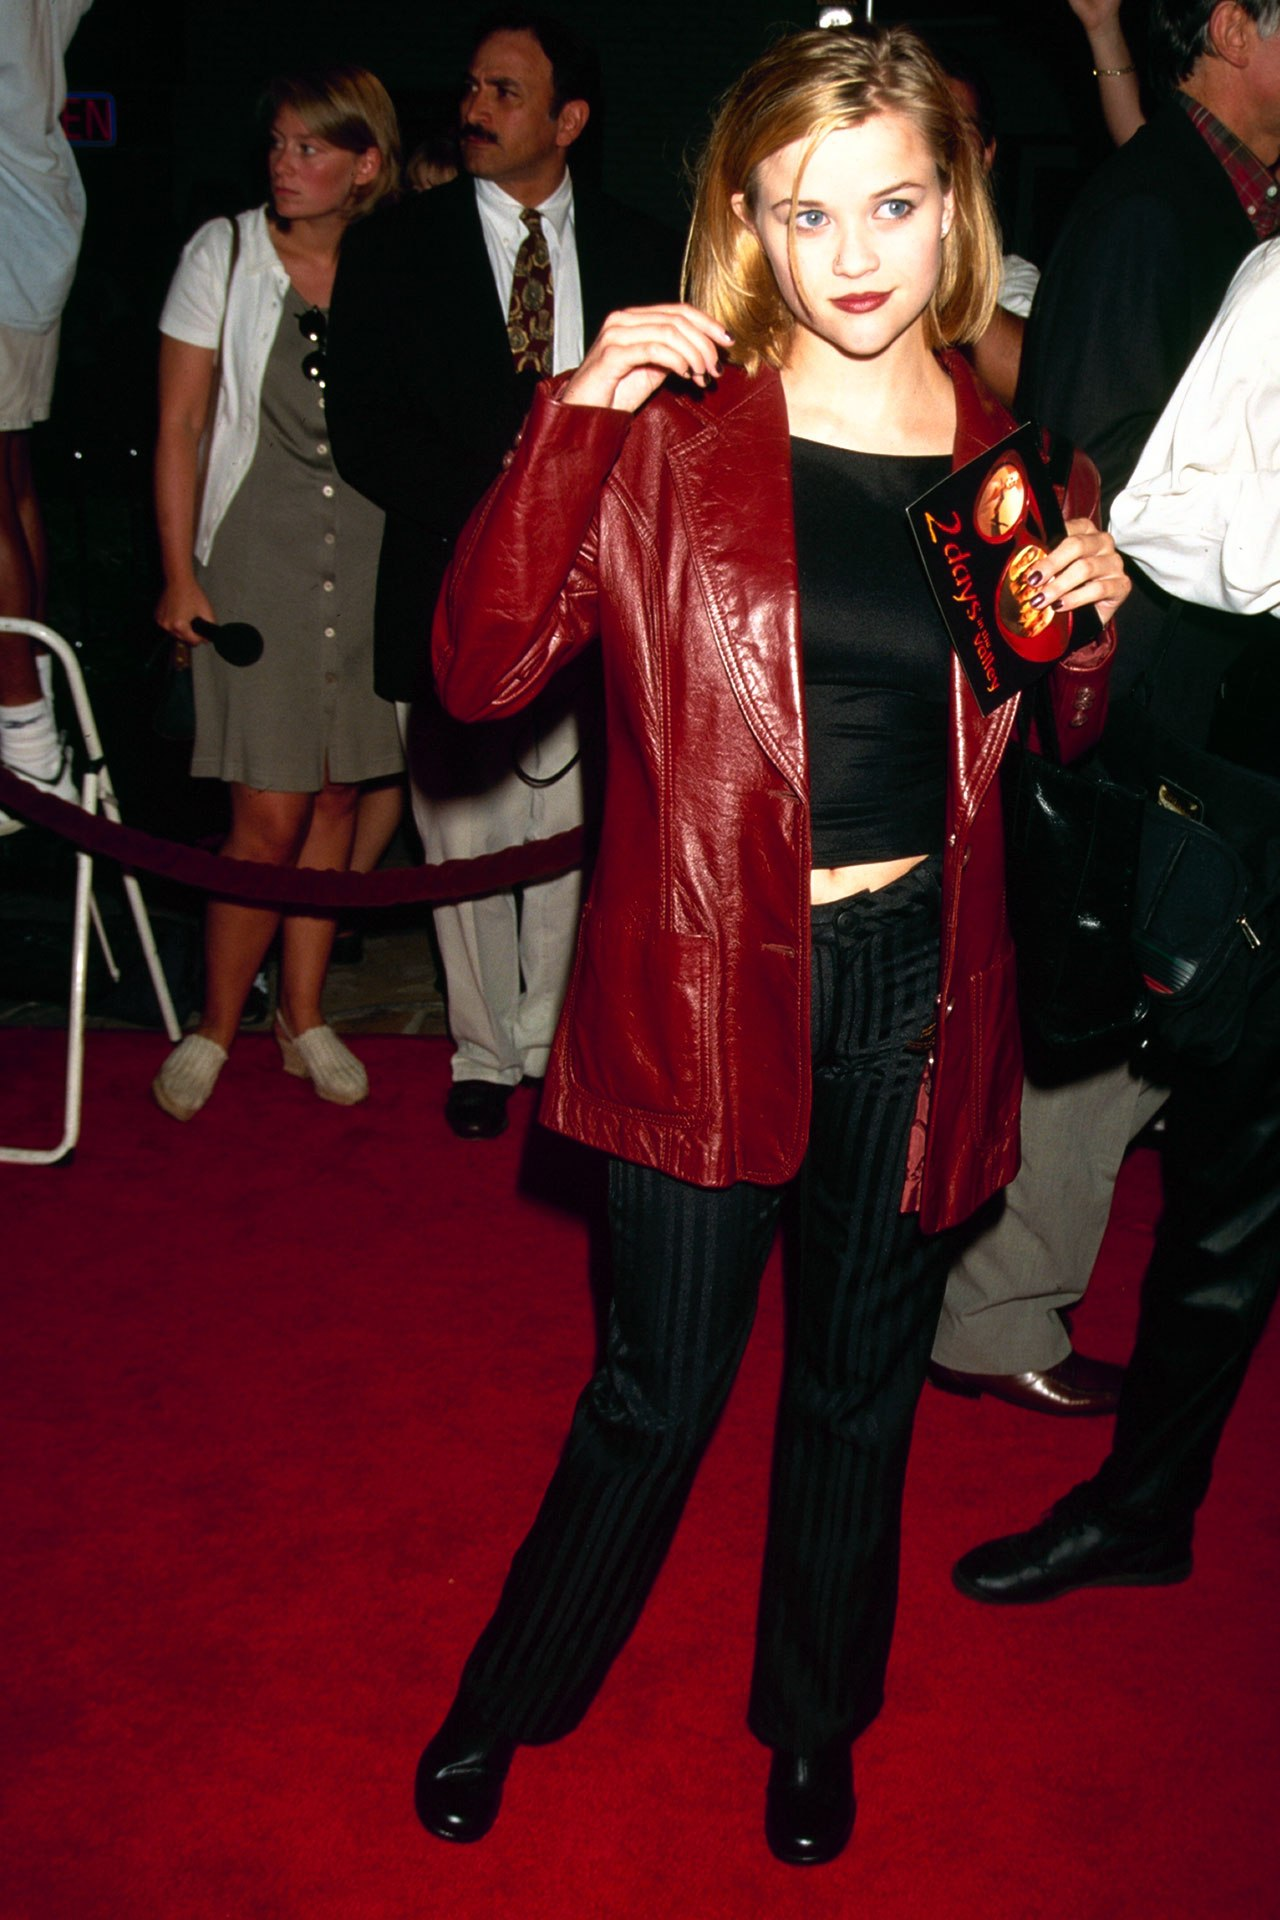 20 of the most iconic red carpet moments from the 1990s